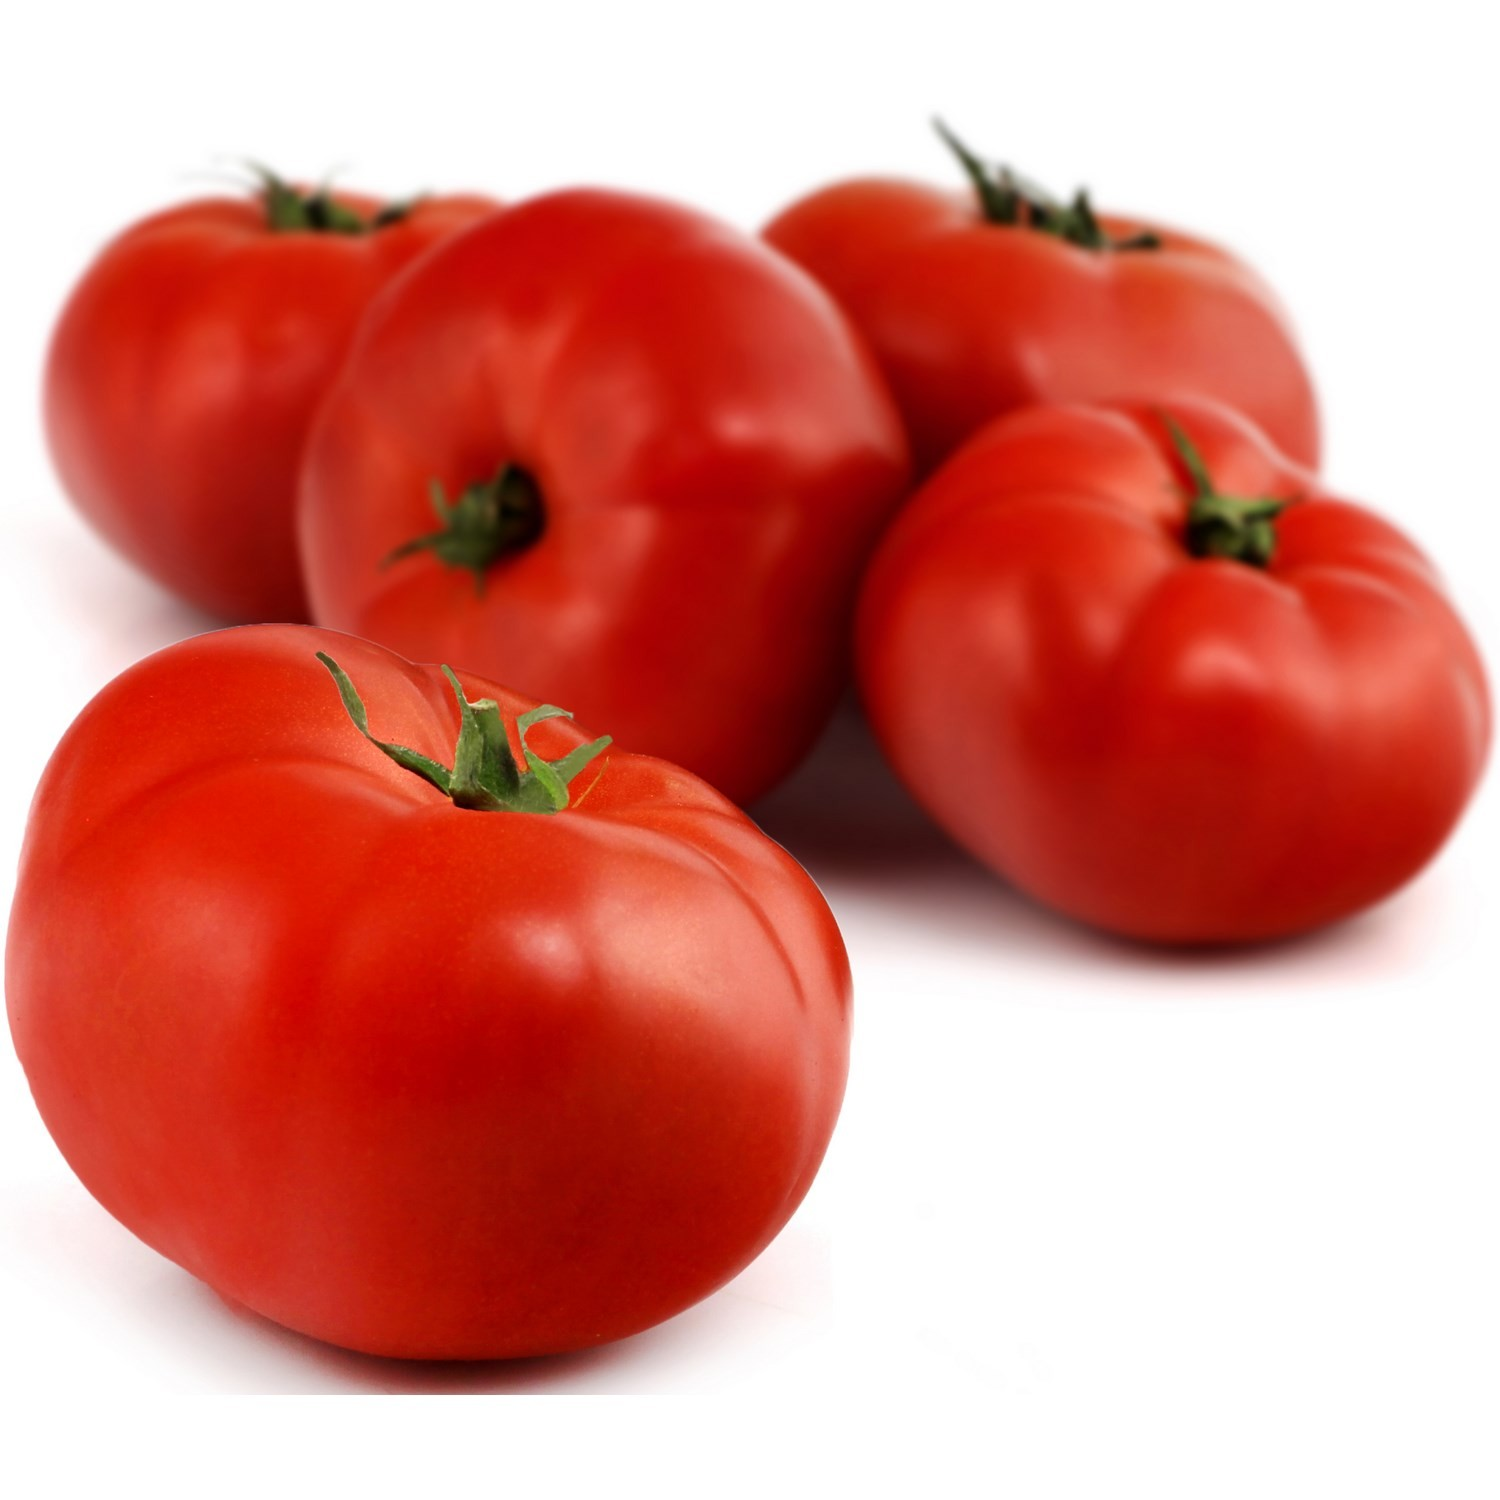 Tomates rondes charnues, 3KG